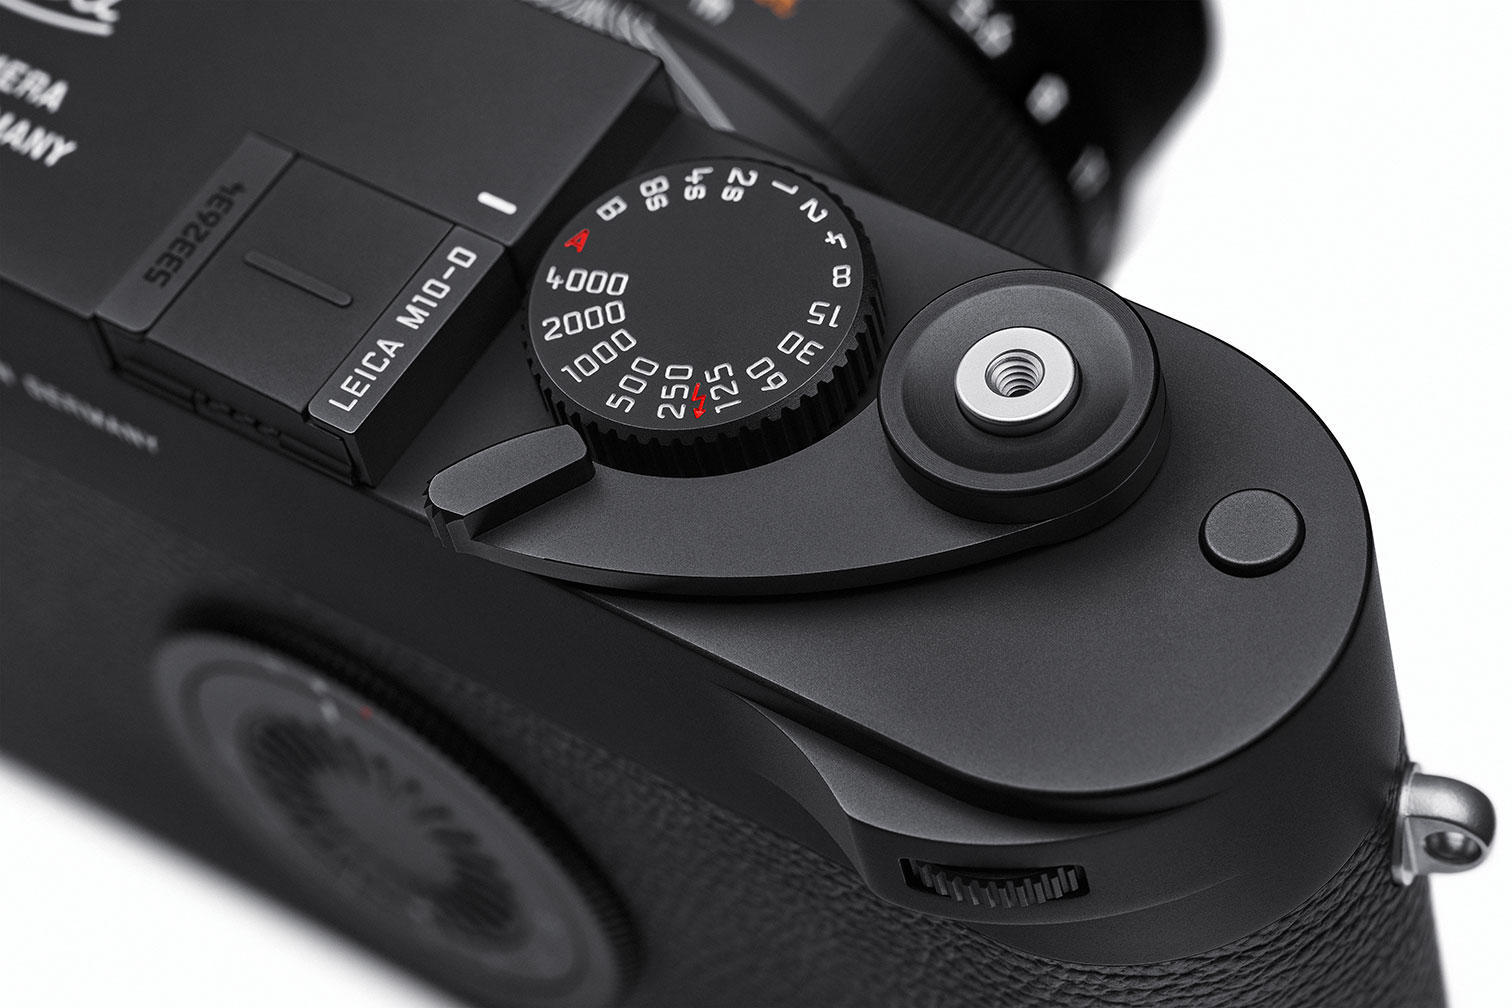 leica m10-d fold-out thumb rest